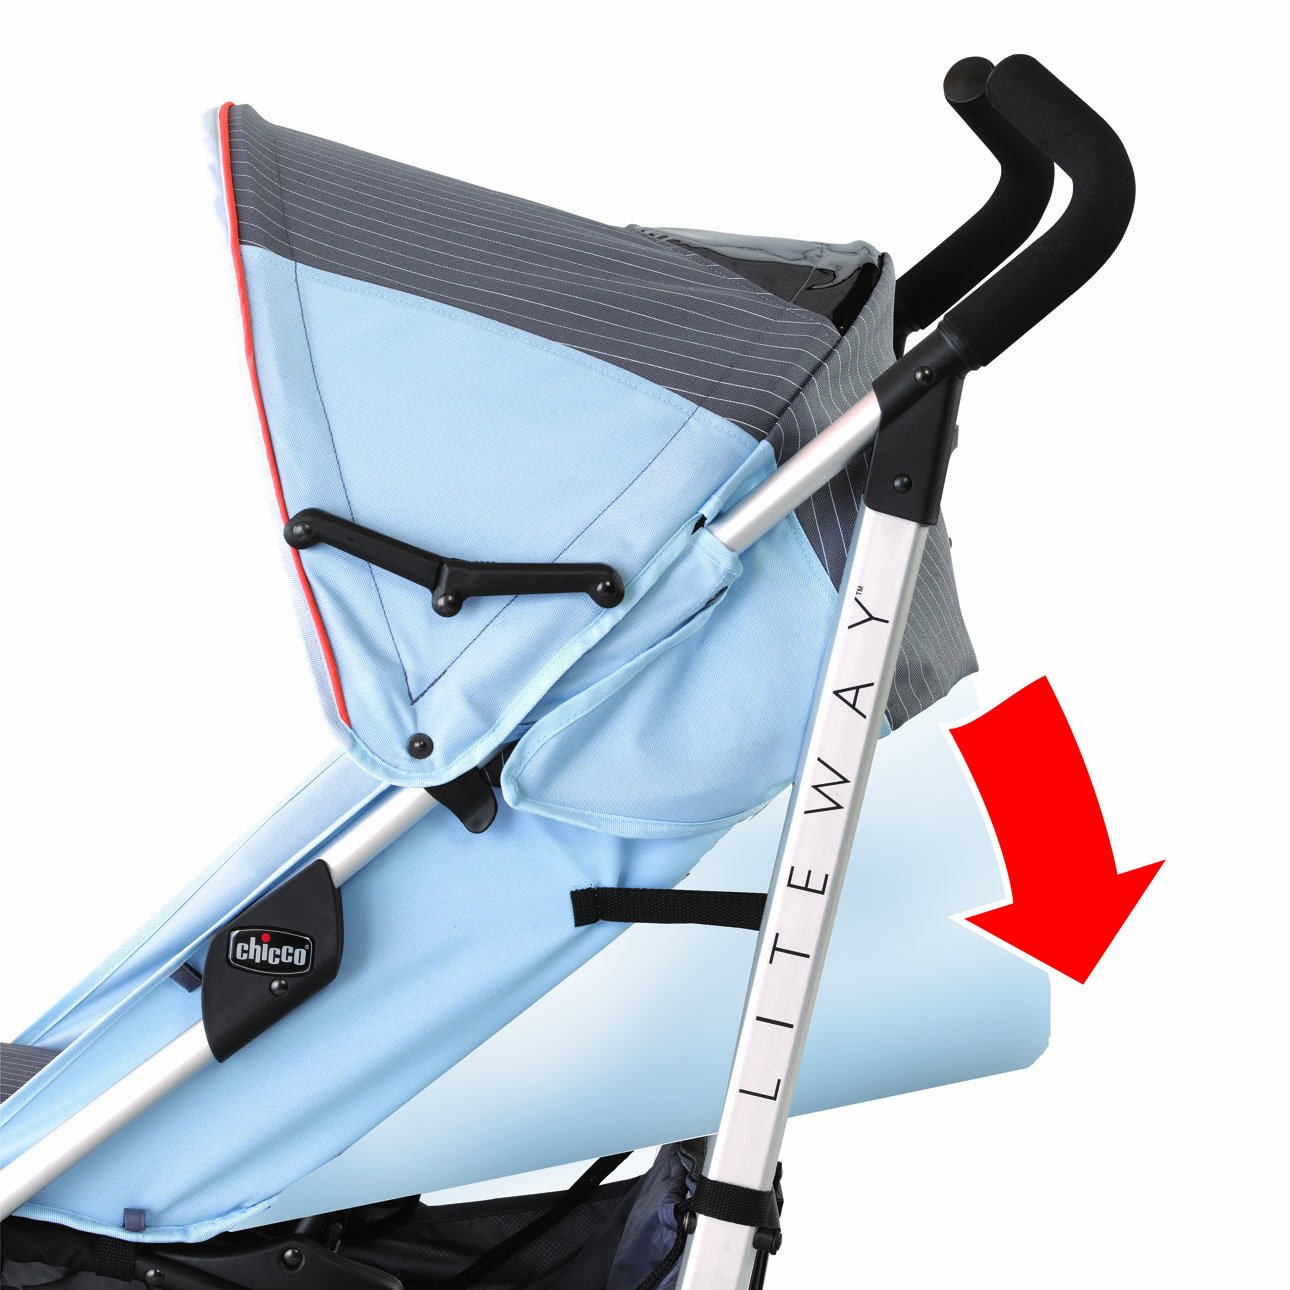 Amazon.com  Chicco Liteway Stroller Magma (Discontinued by Manufacturer)  Lightweight Strollers  Baby  sc 1 st  Amazon.com & Amazon.com : Chicco Liteway Stroller Magma (Discontinued by ... islam-shia.org